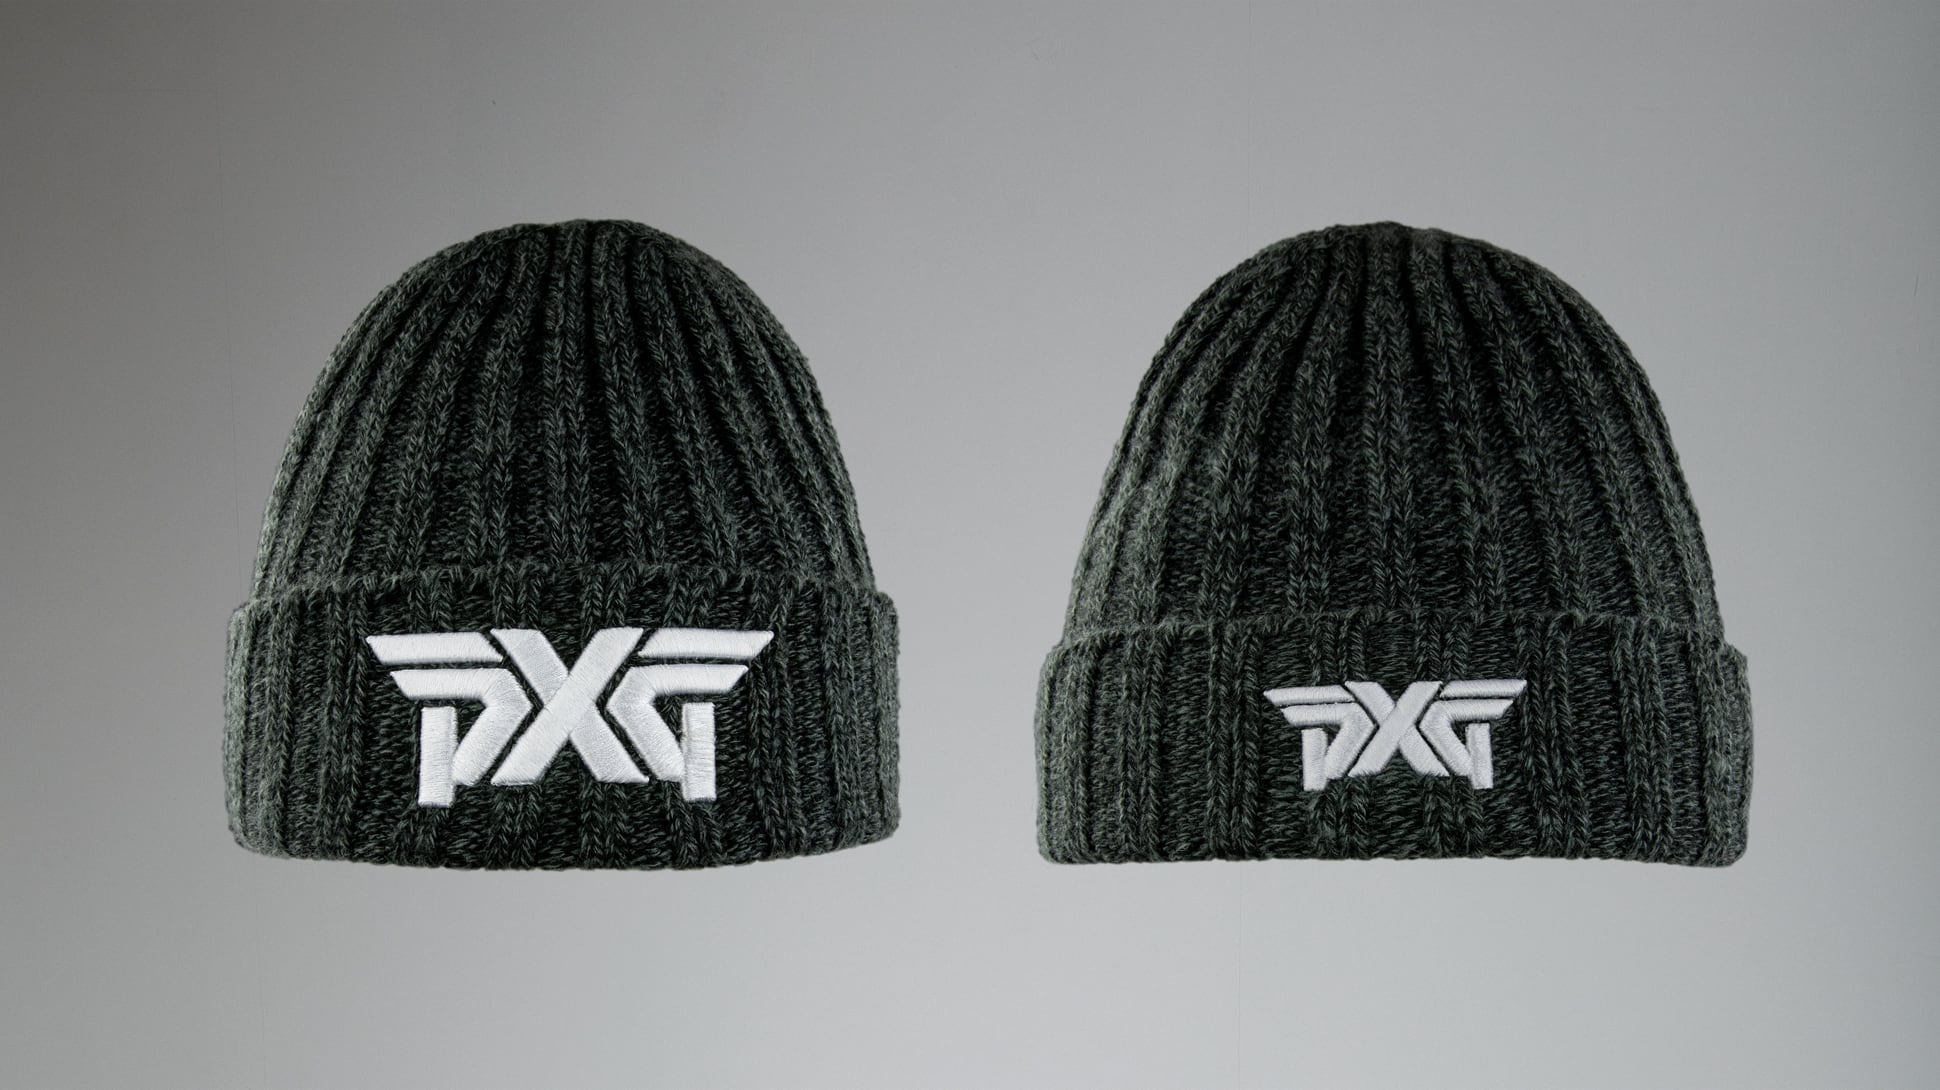 Cold Weather Knit Beanie Image 1